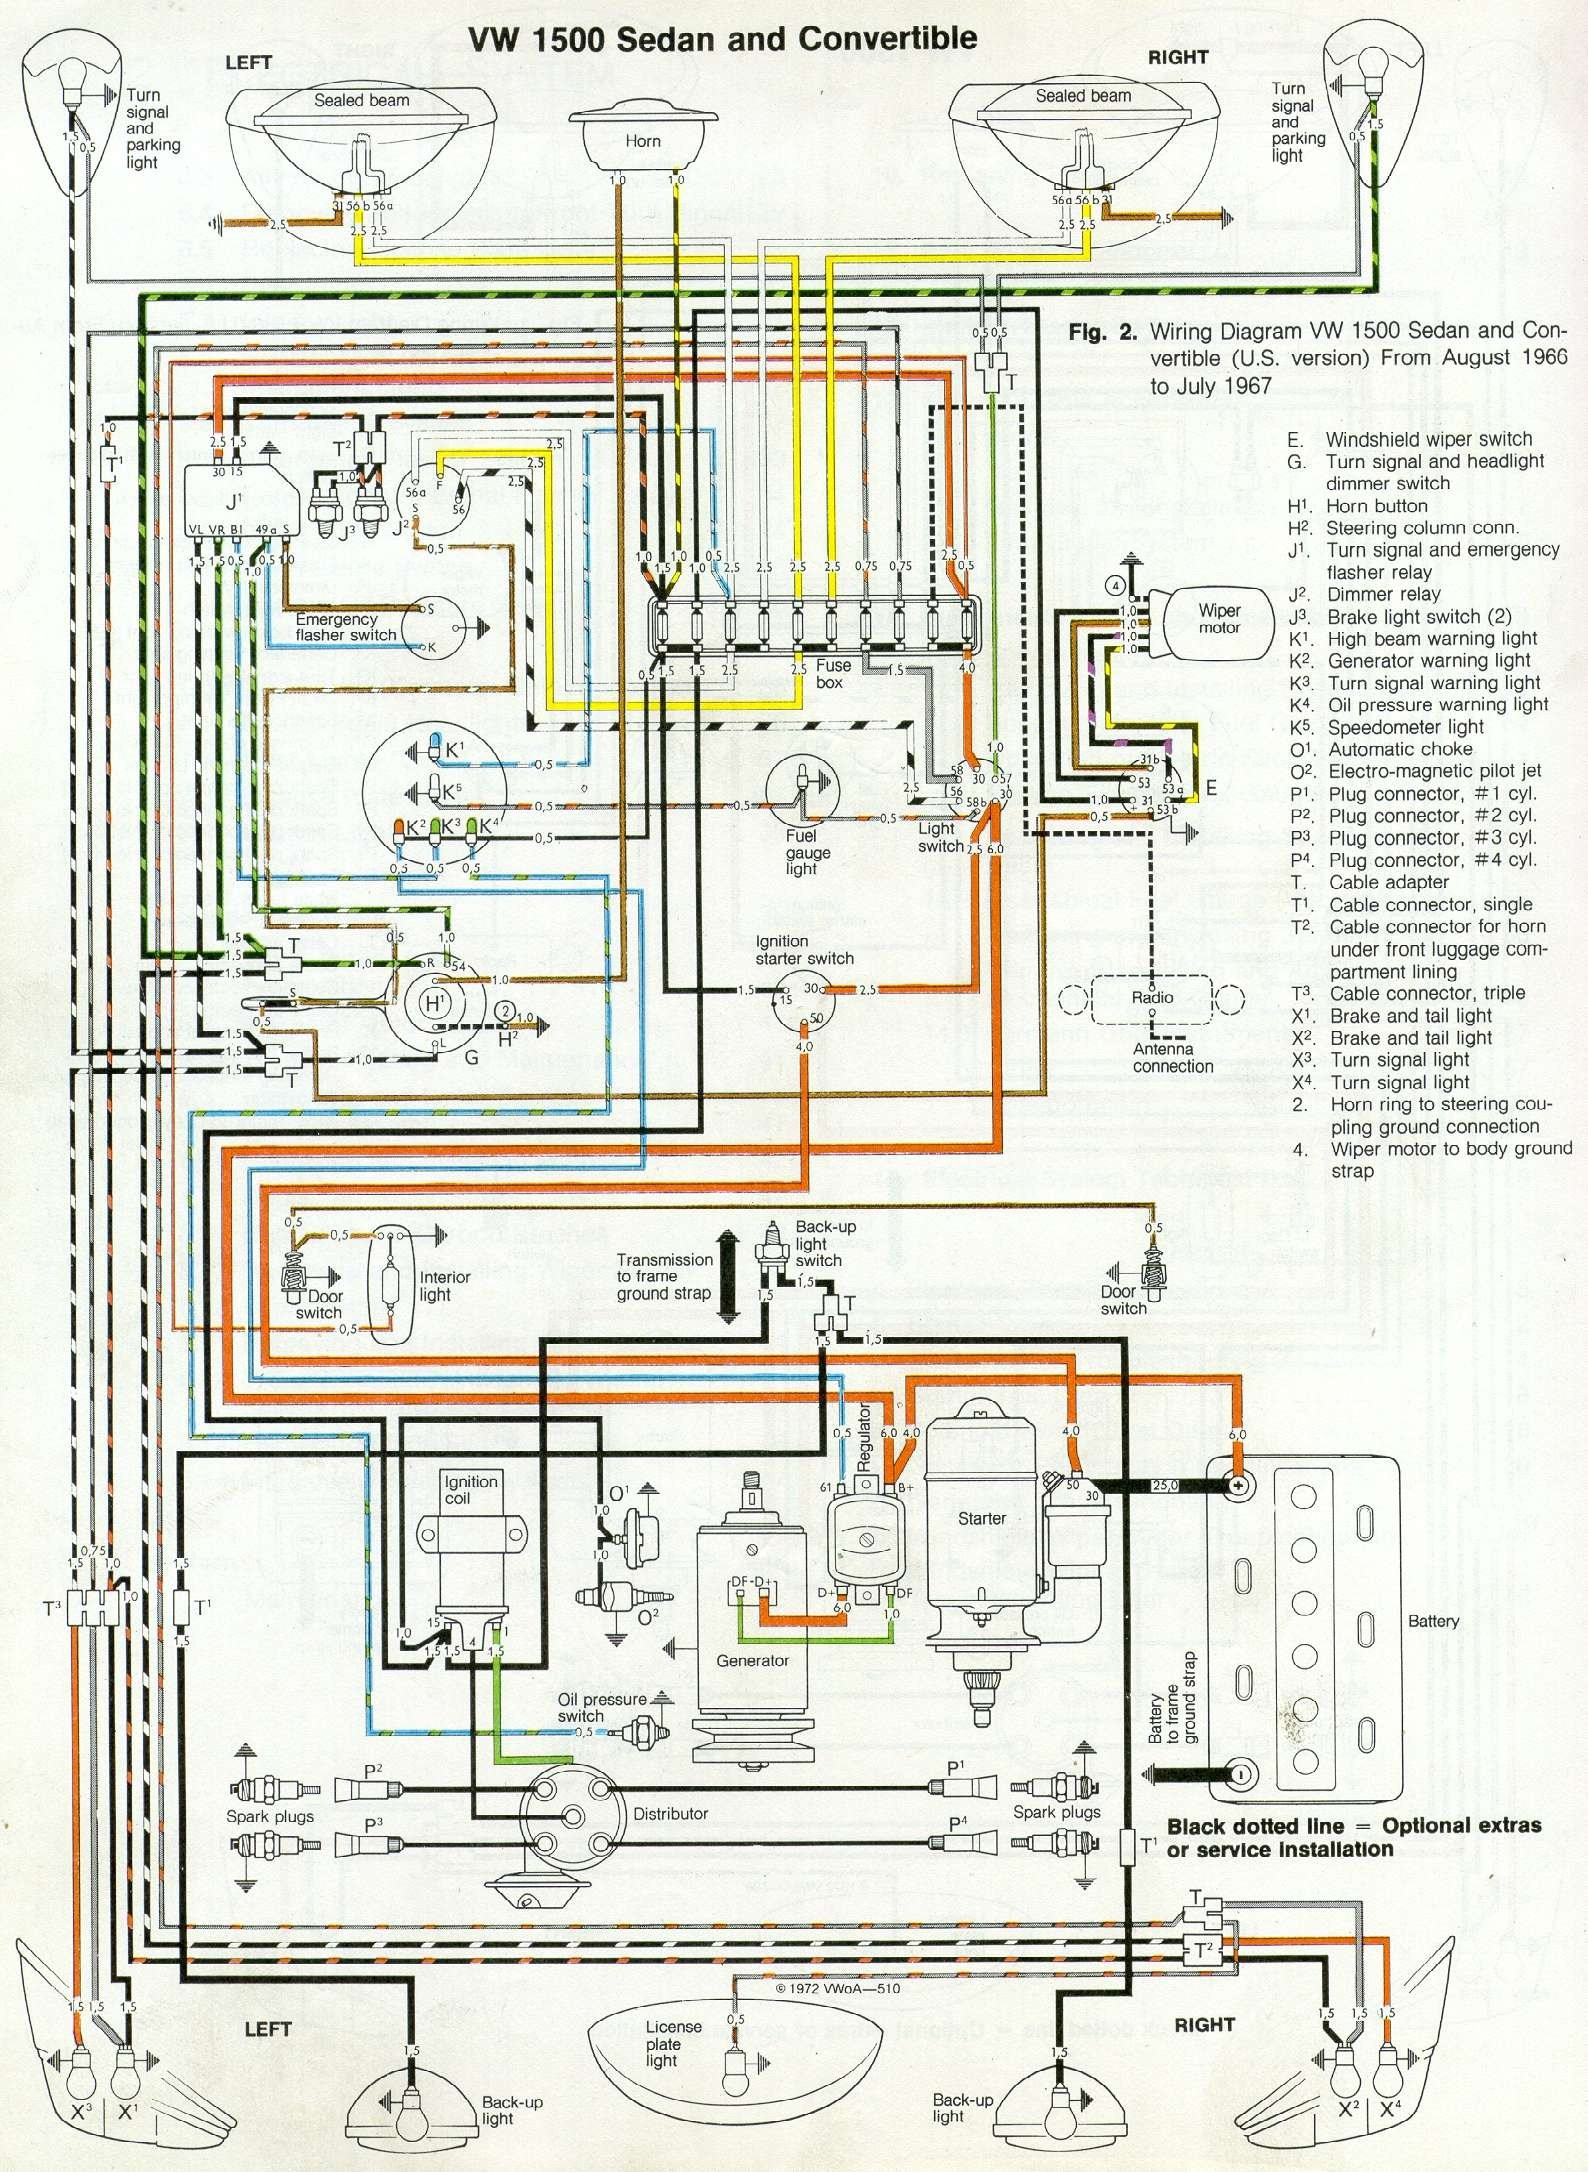 1967 vw beetle wiring harness wiring diagram Car Stereo Wiring Harness 67 Vw Wiring Harness #1